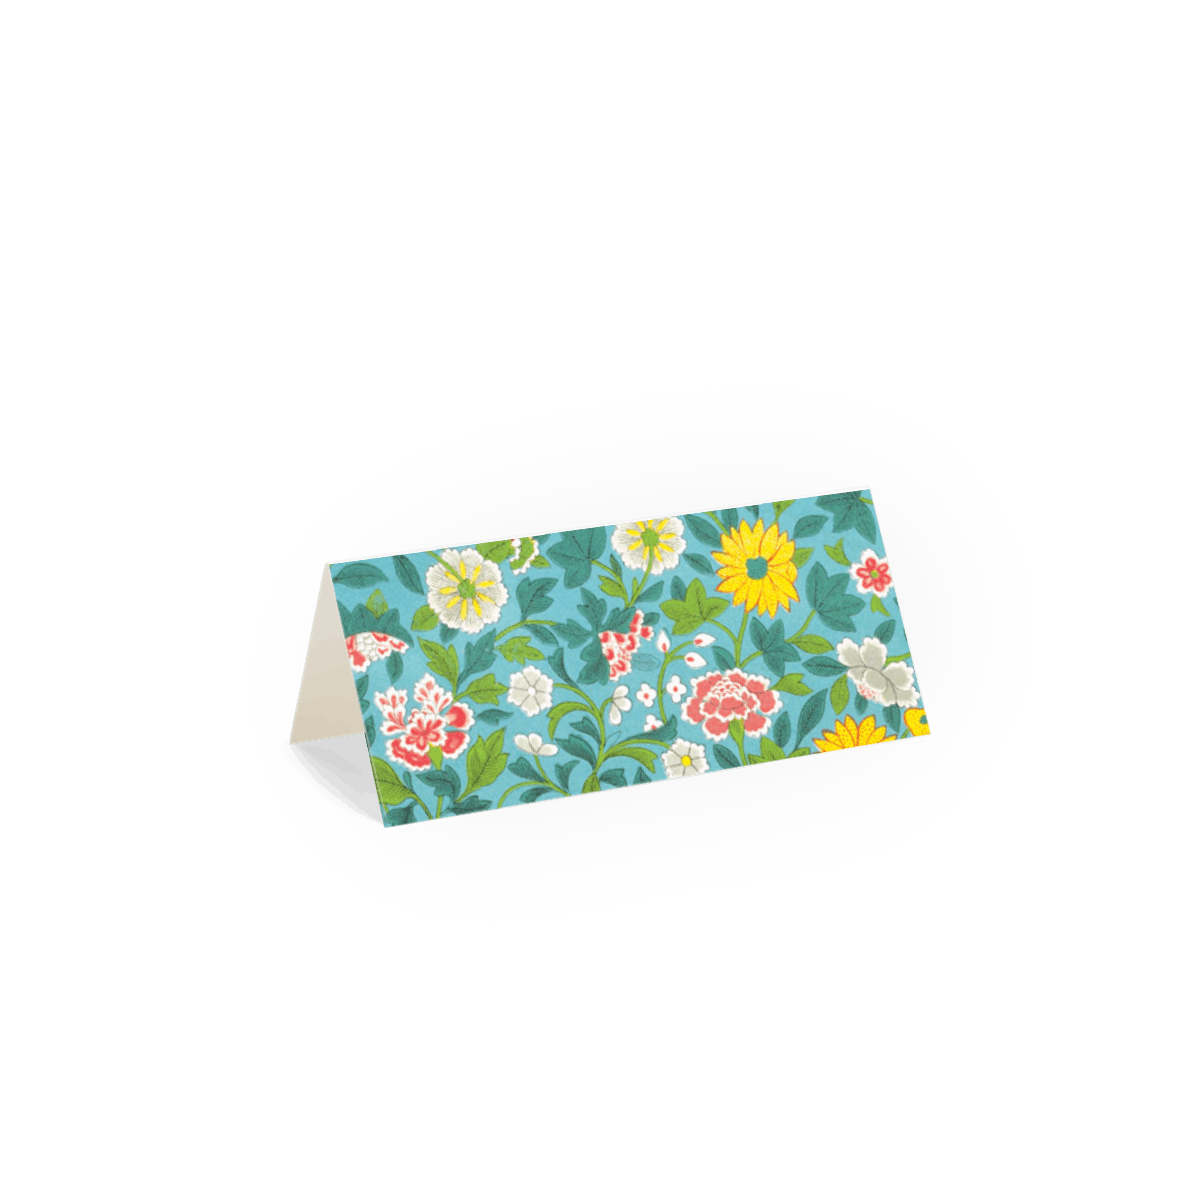 Https%3a%2f%2fwww.papier.com%2fproduct image%2f20221%2f15%2fwild meadow flowers 5176 back 1488550398.png?ixlib=rb 1.1